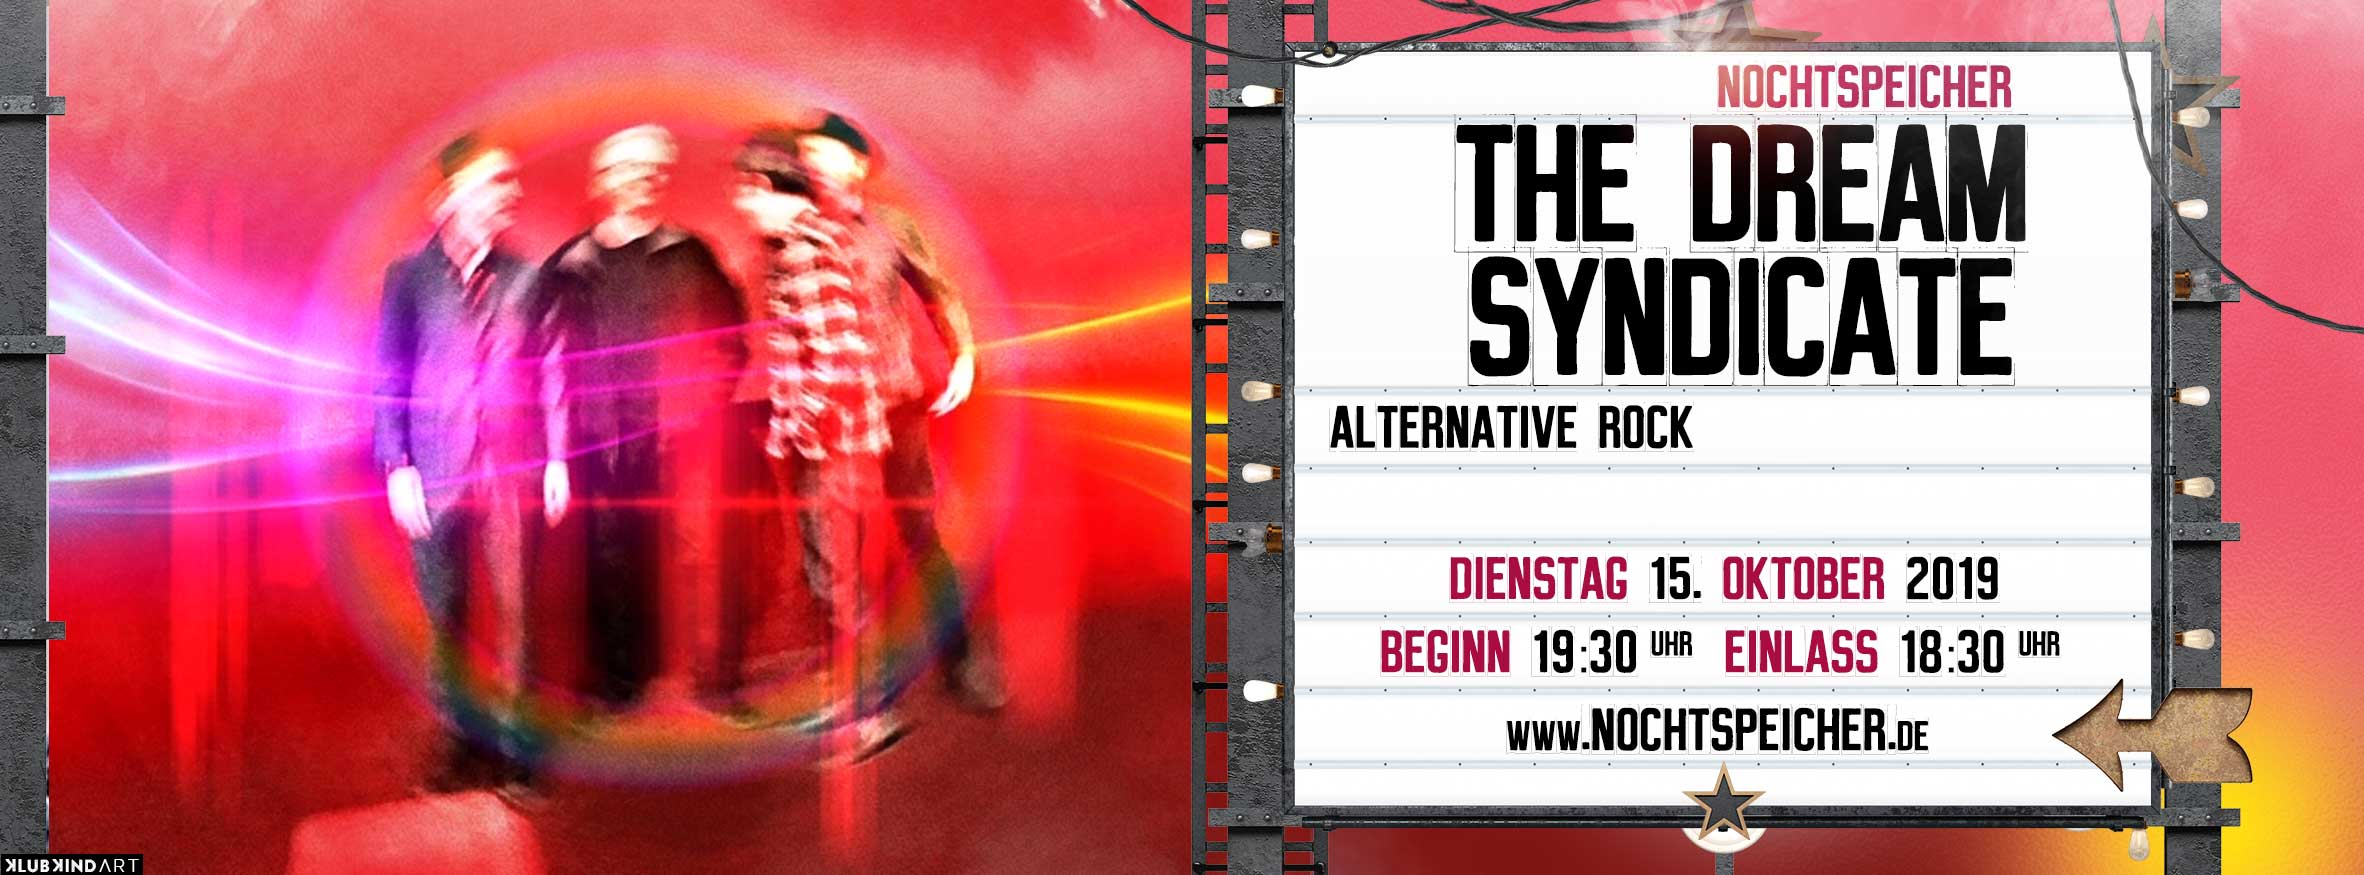 THE DREAM SYNDICATE (USA)